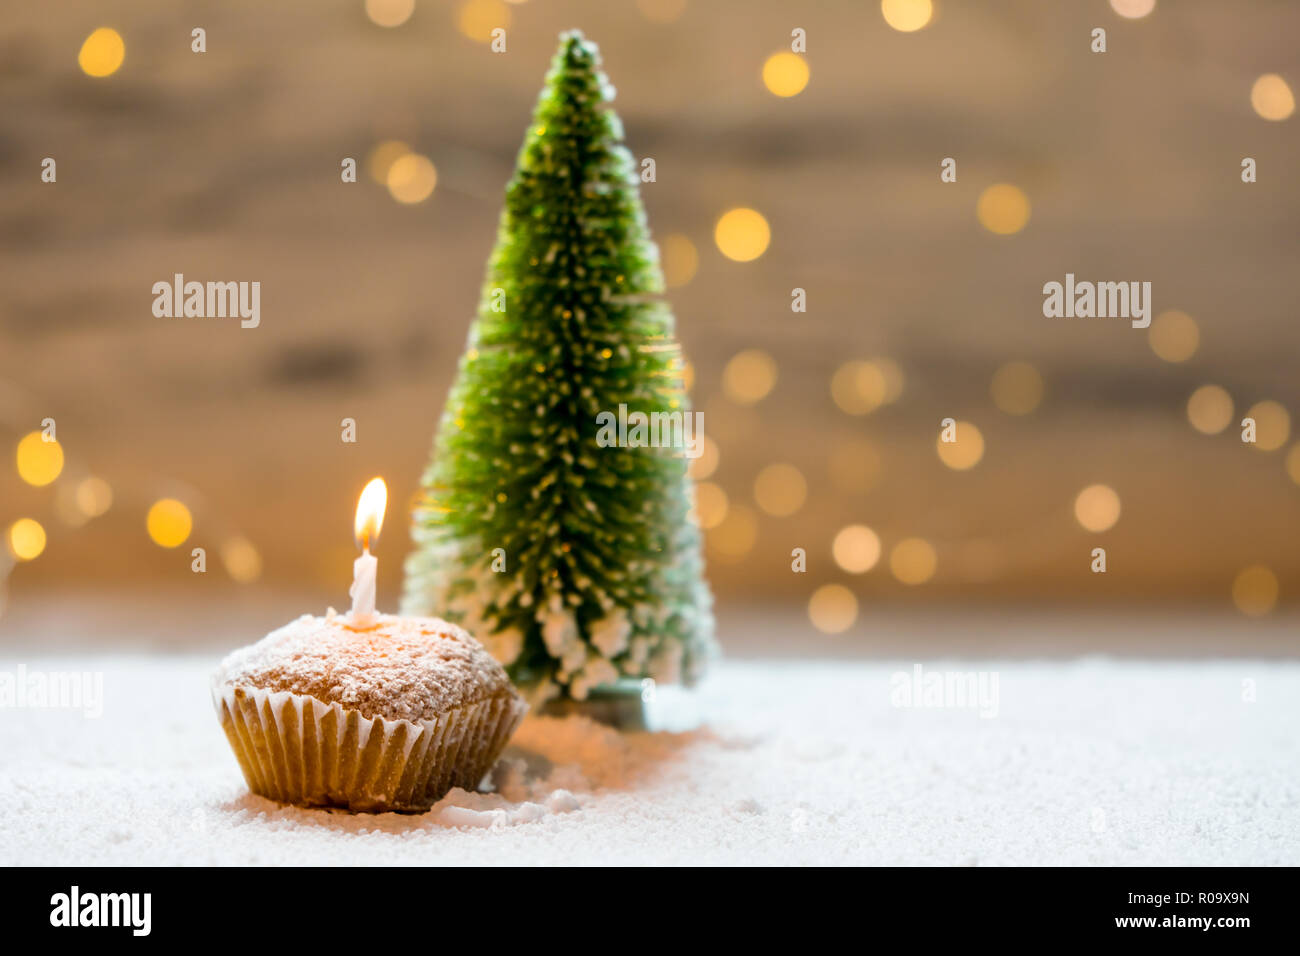 Cupcake With Candle On Winter Background Stock Photo Alamy